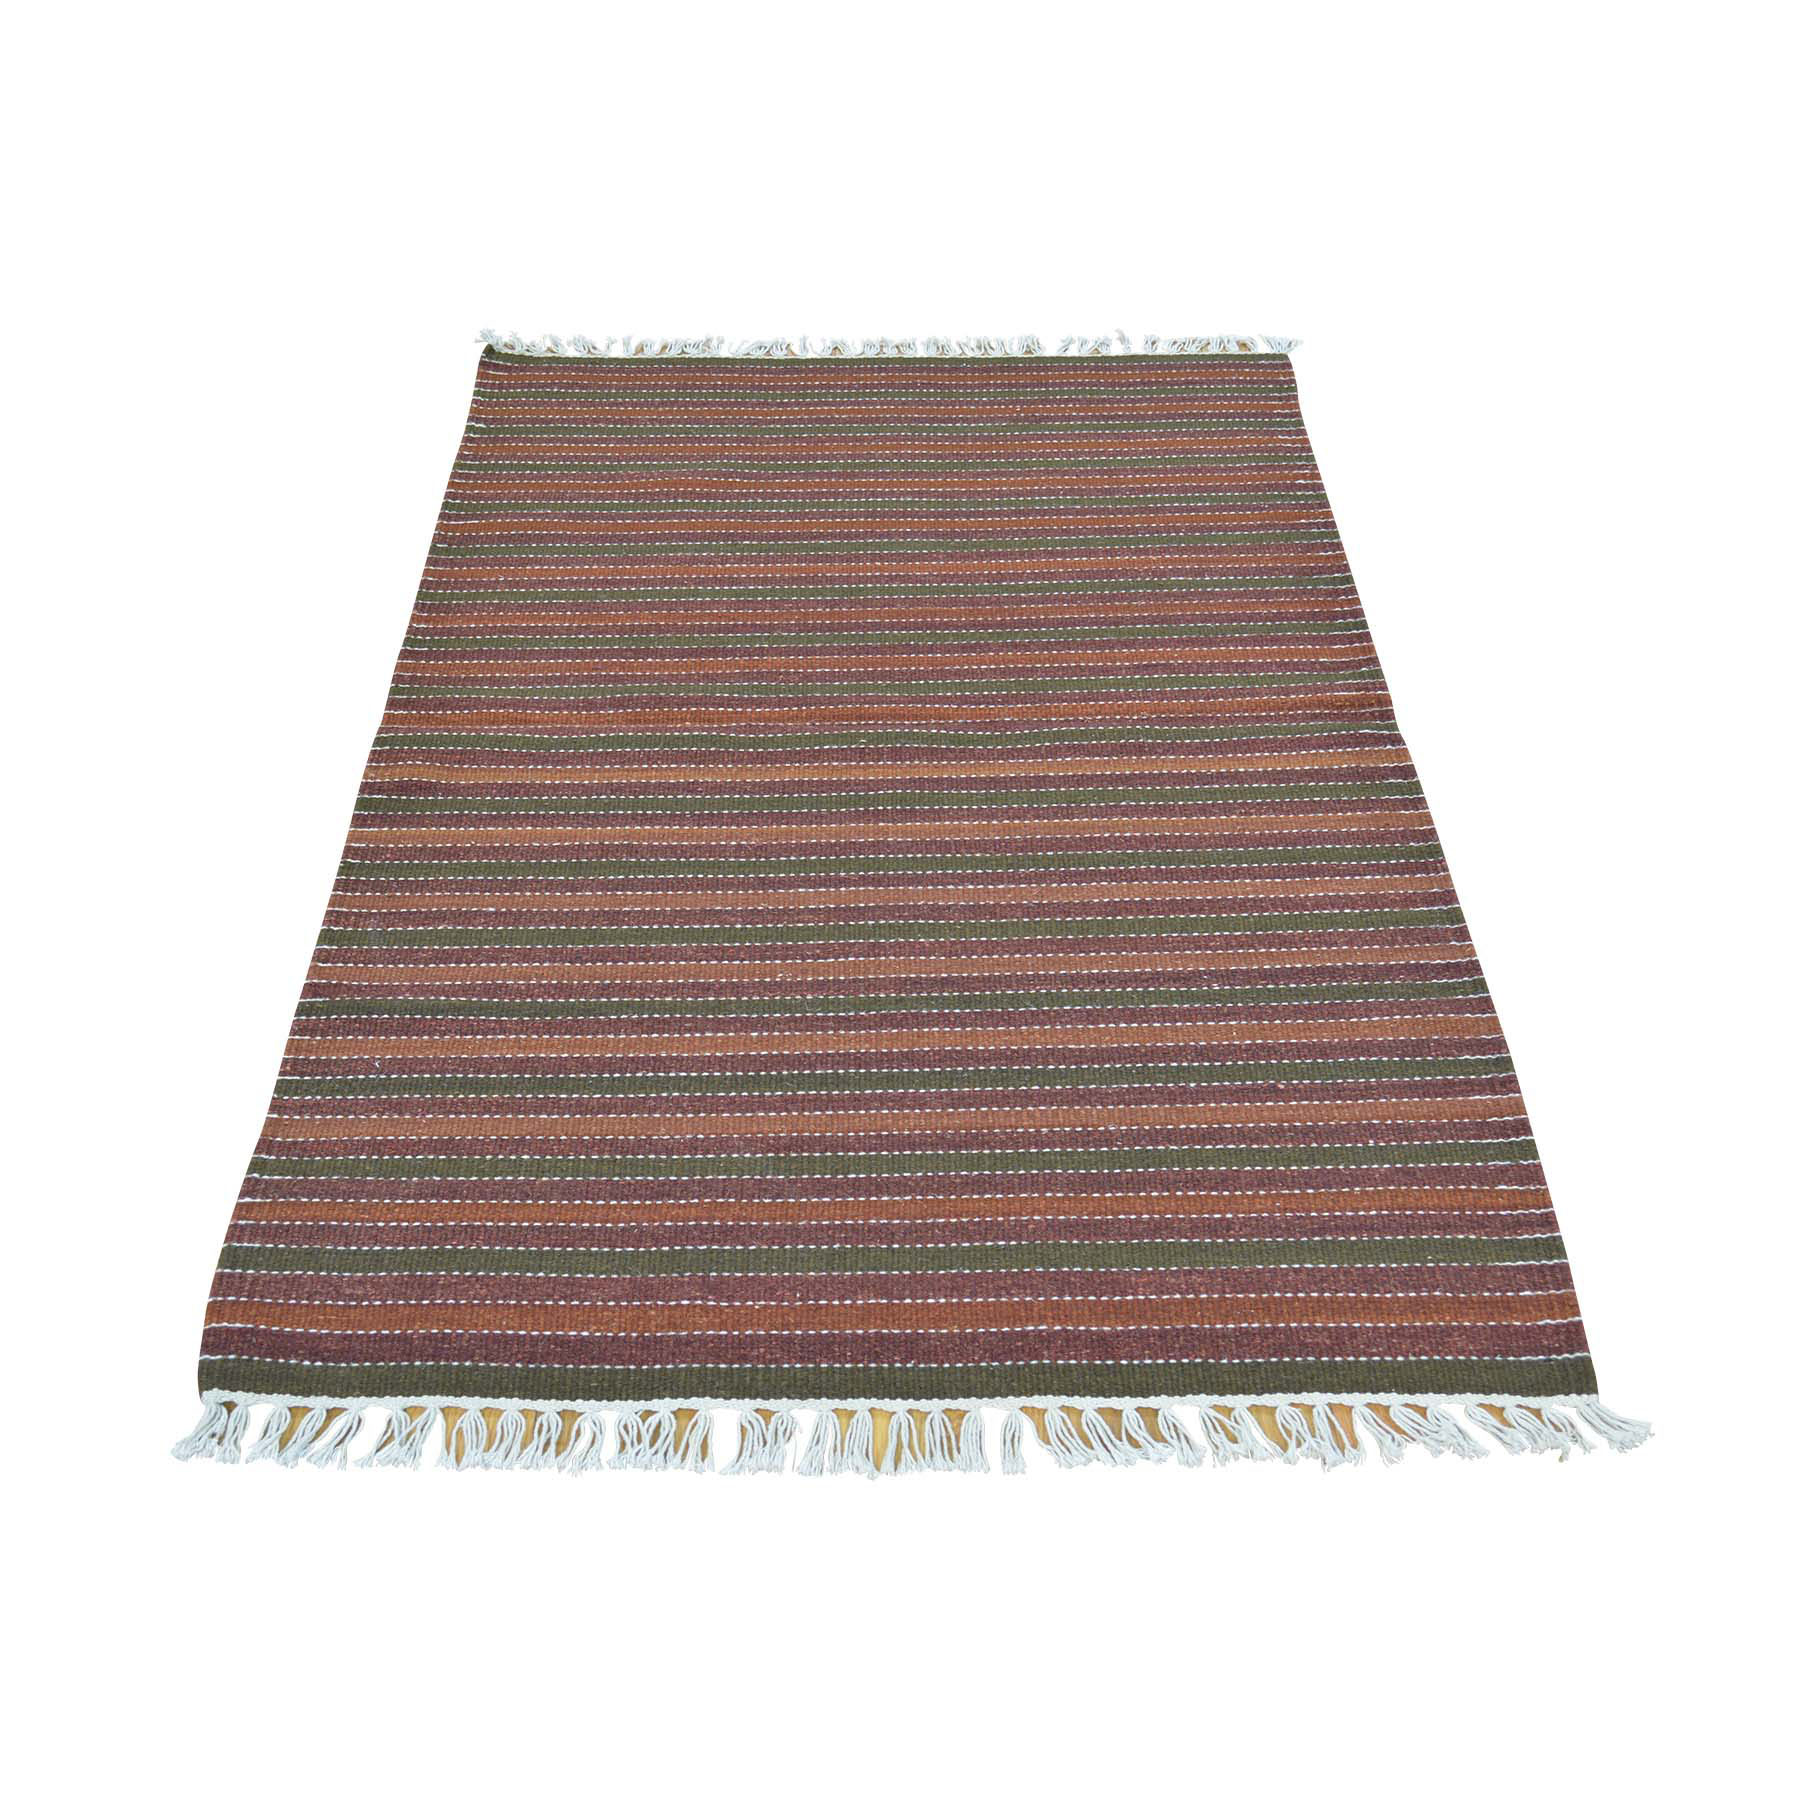 "3'X4'10"" Pure Wool Hand Woven Striped Durie Kilim Flat Weave Rug moac0aac"